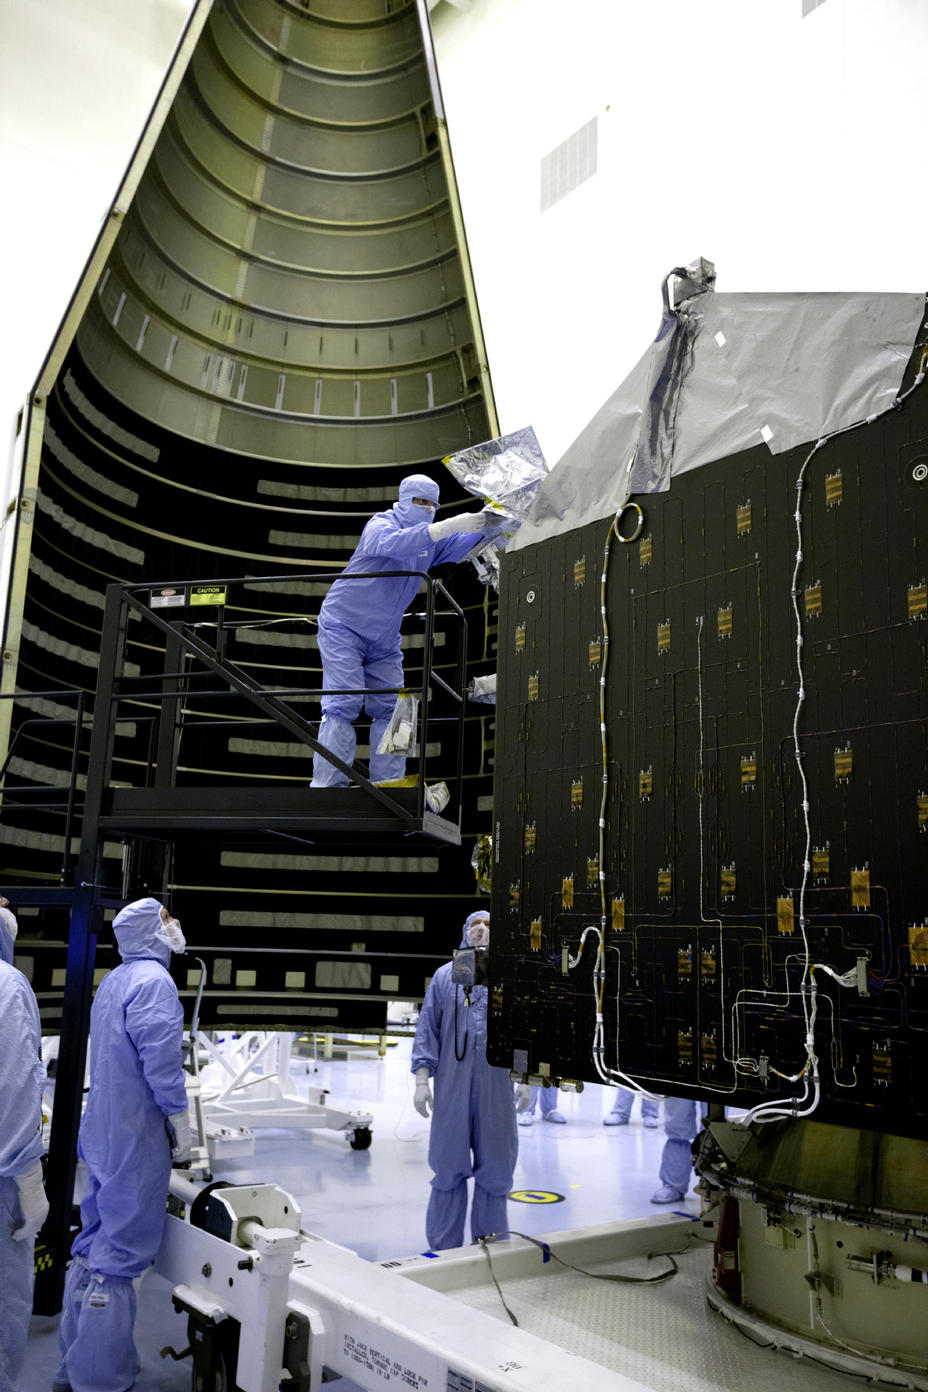 Inside the Payload Hazardous Servicing Facility at NASA's Kennedy Space Center in Florida, engineers and technicians prepare the Mars Atmosphere and Volatile Evolution, or MAVEN, spacecraft for encapsulation inside its payload fairing.